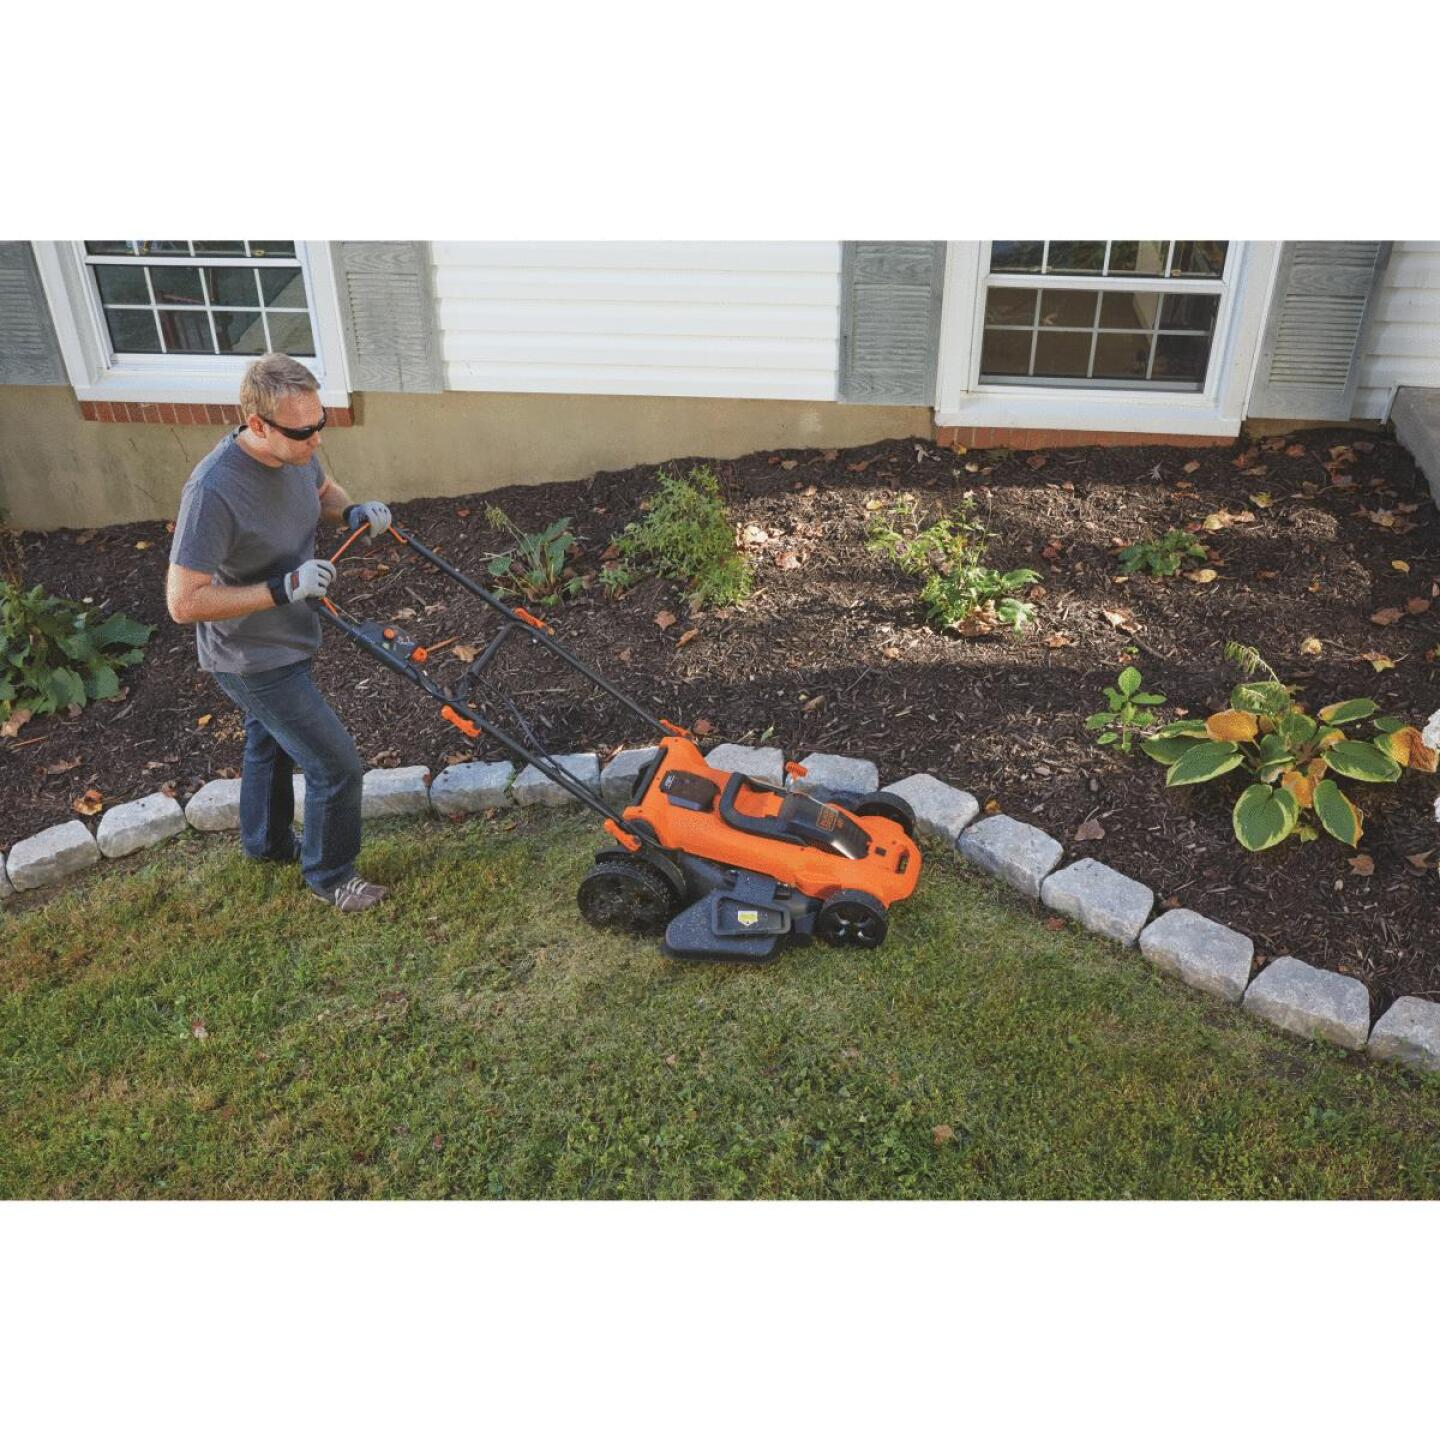 Black & Decker 20 In. 40V MAX Lithium Ion Push Cordless Lawn Mower Image 2